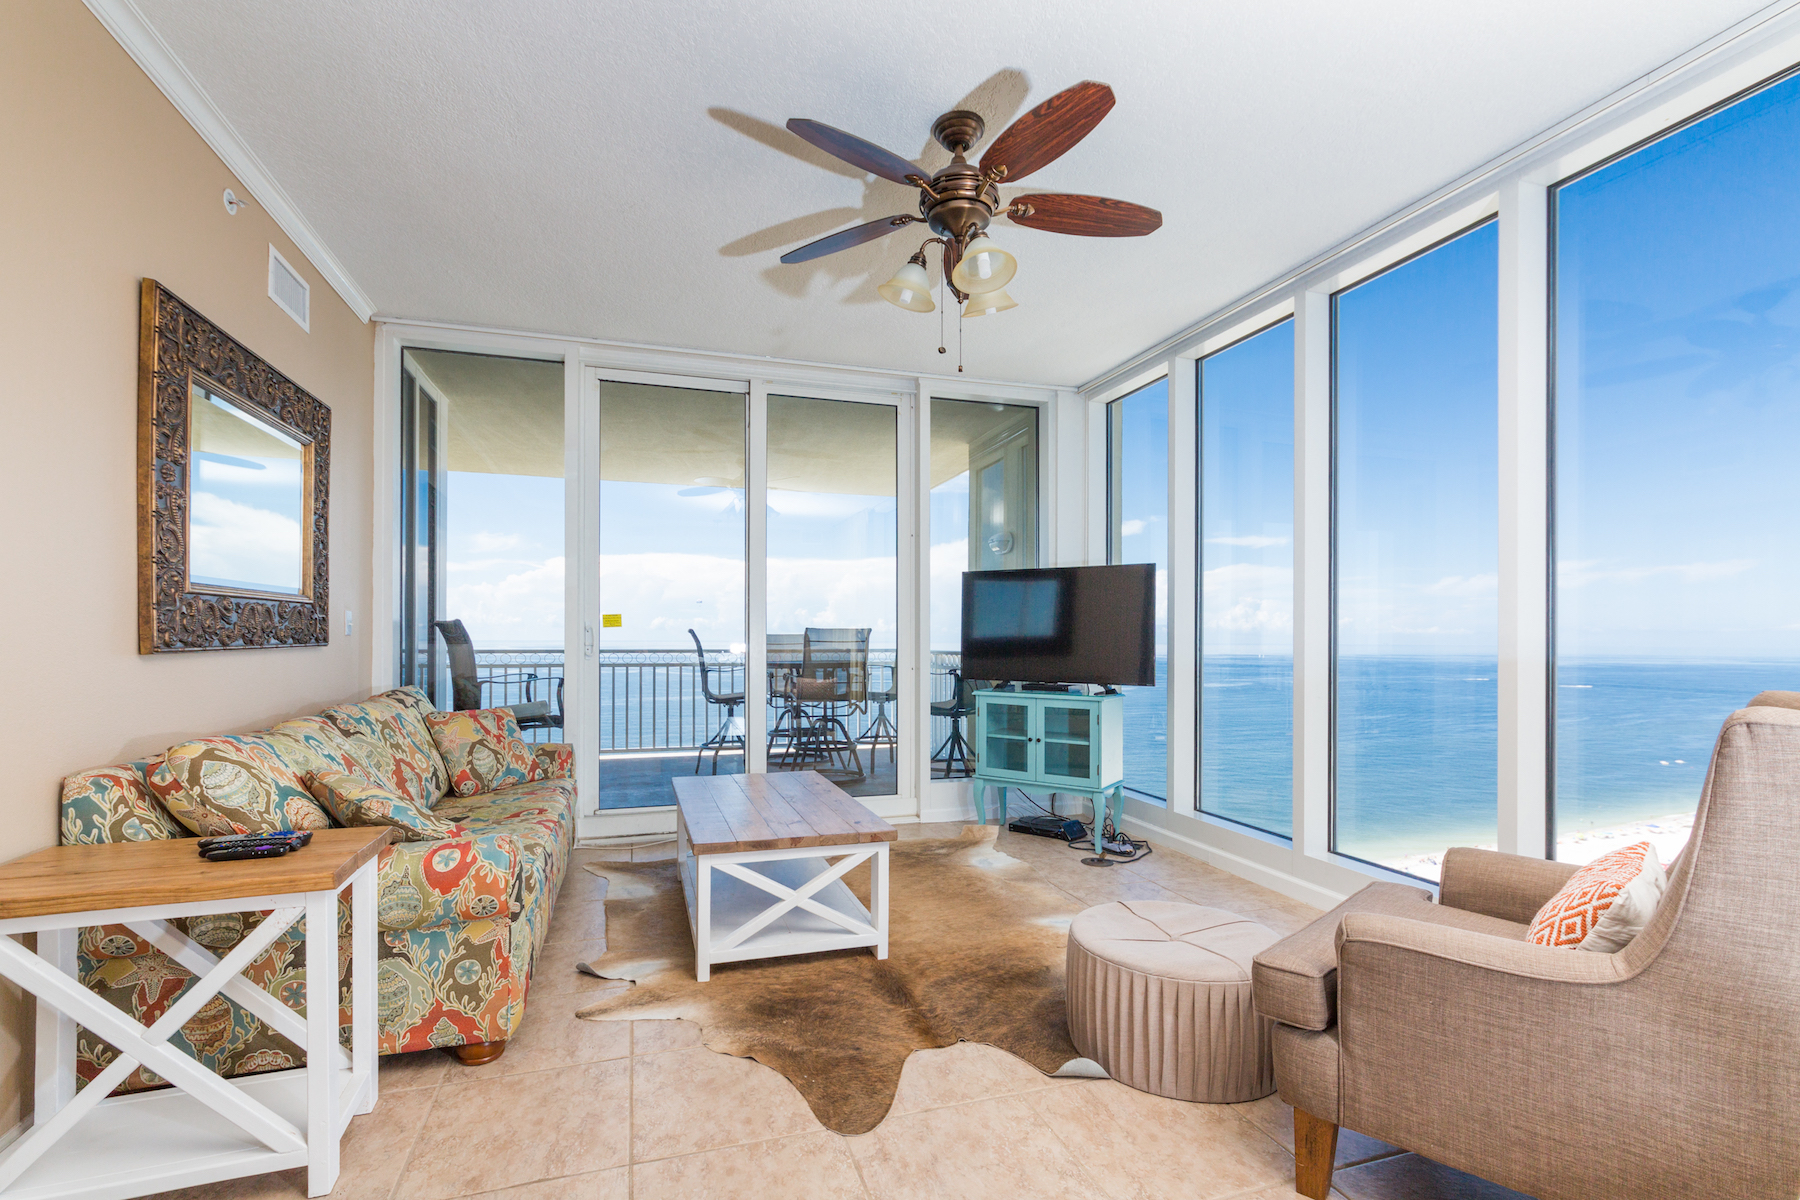 Condominium for Sale at The Colonnades 2003 527 East Beach Boulevard Unit 2003, Gulf Shores, Alabama, 36542 United States